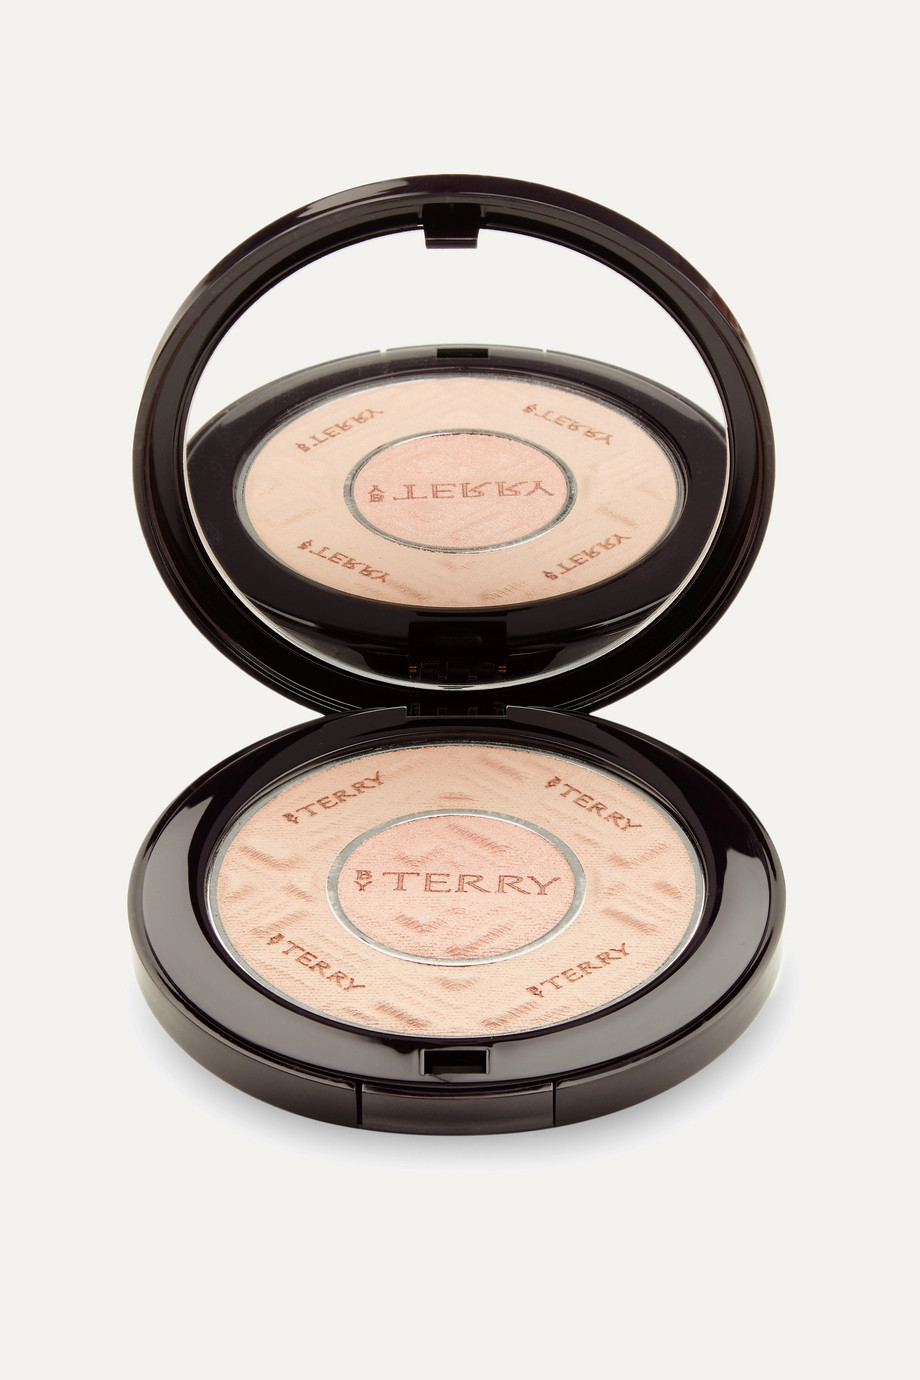 BY TERRY Compact-Expert Dual Powder - Ivory Fair 1